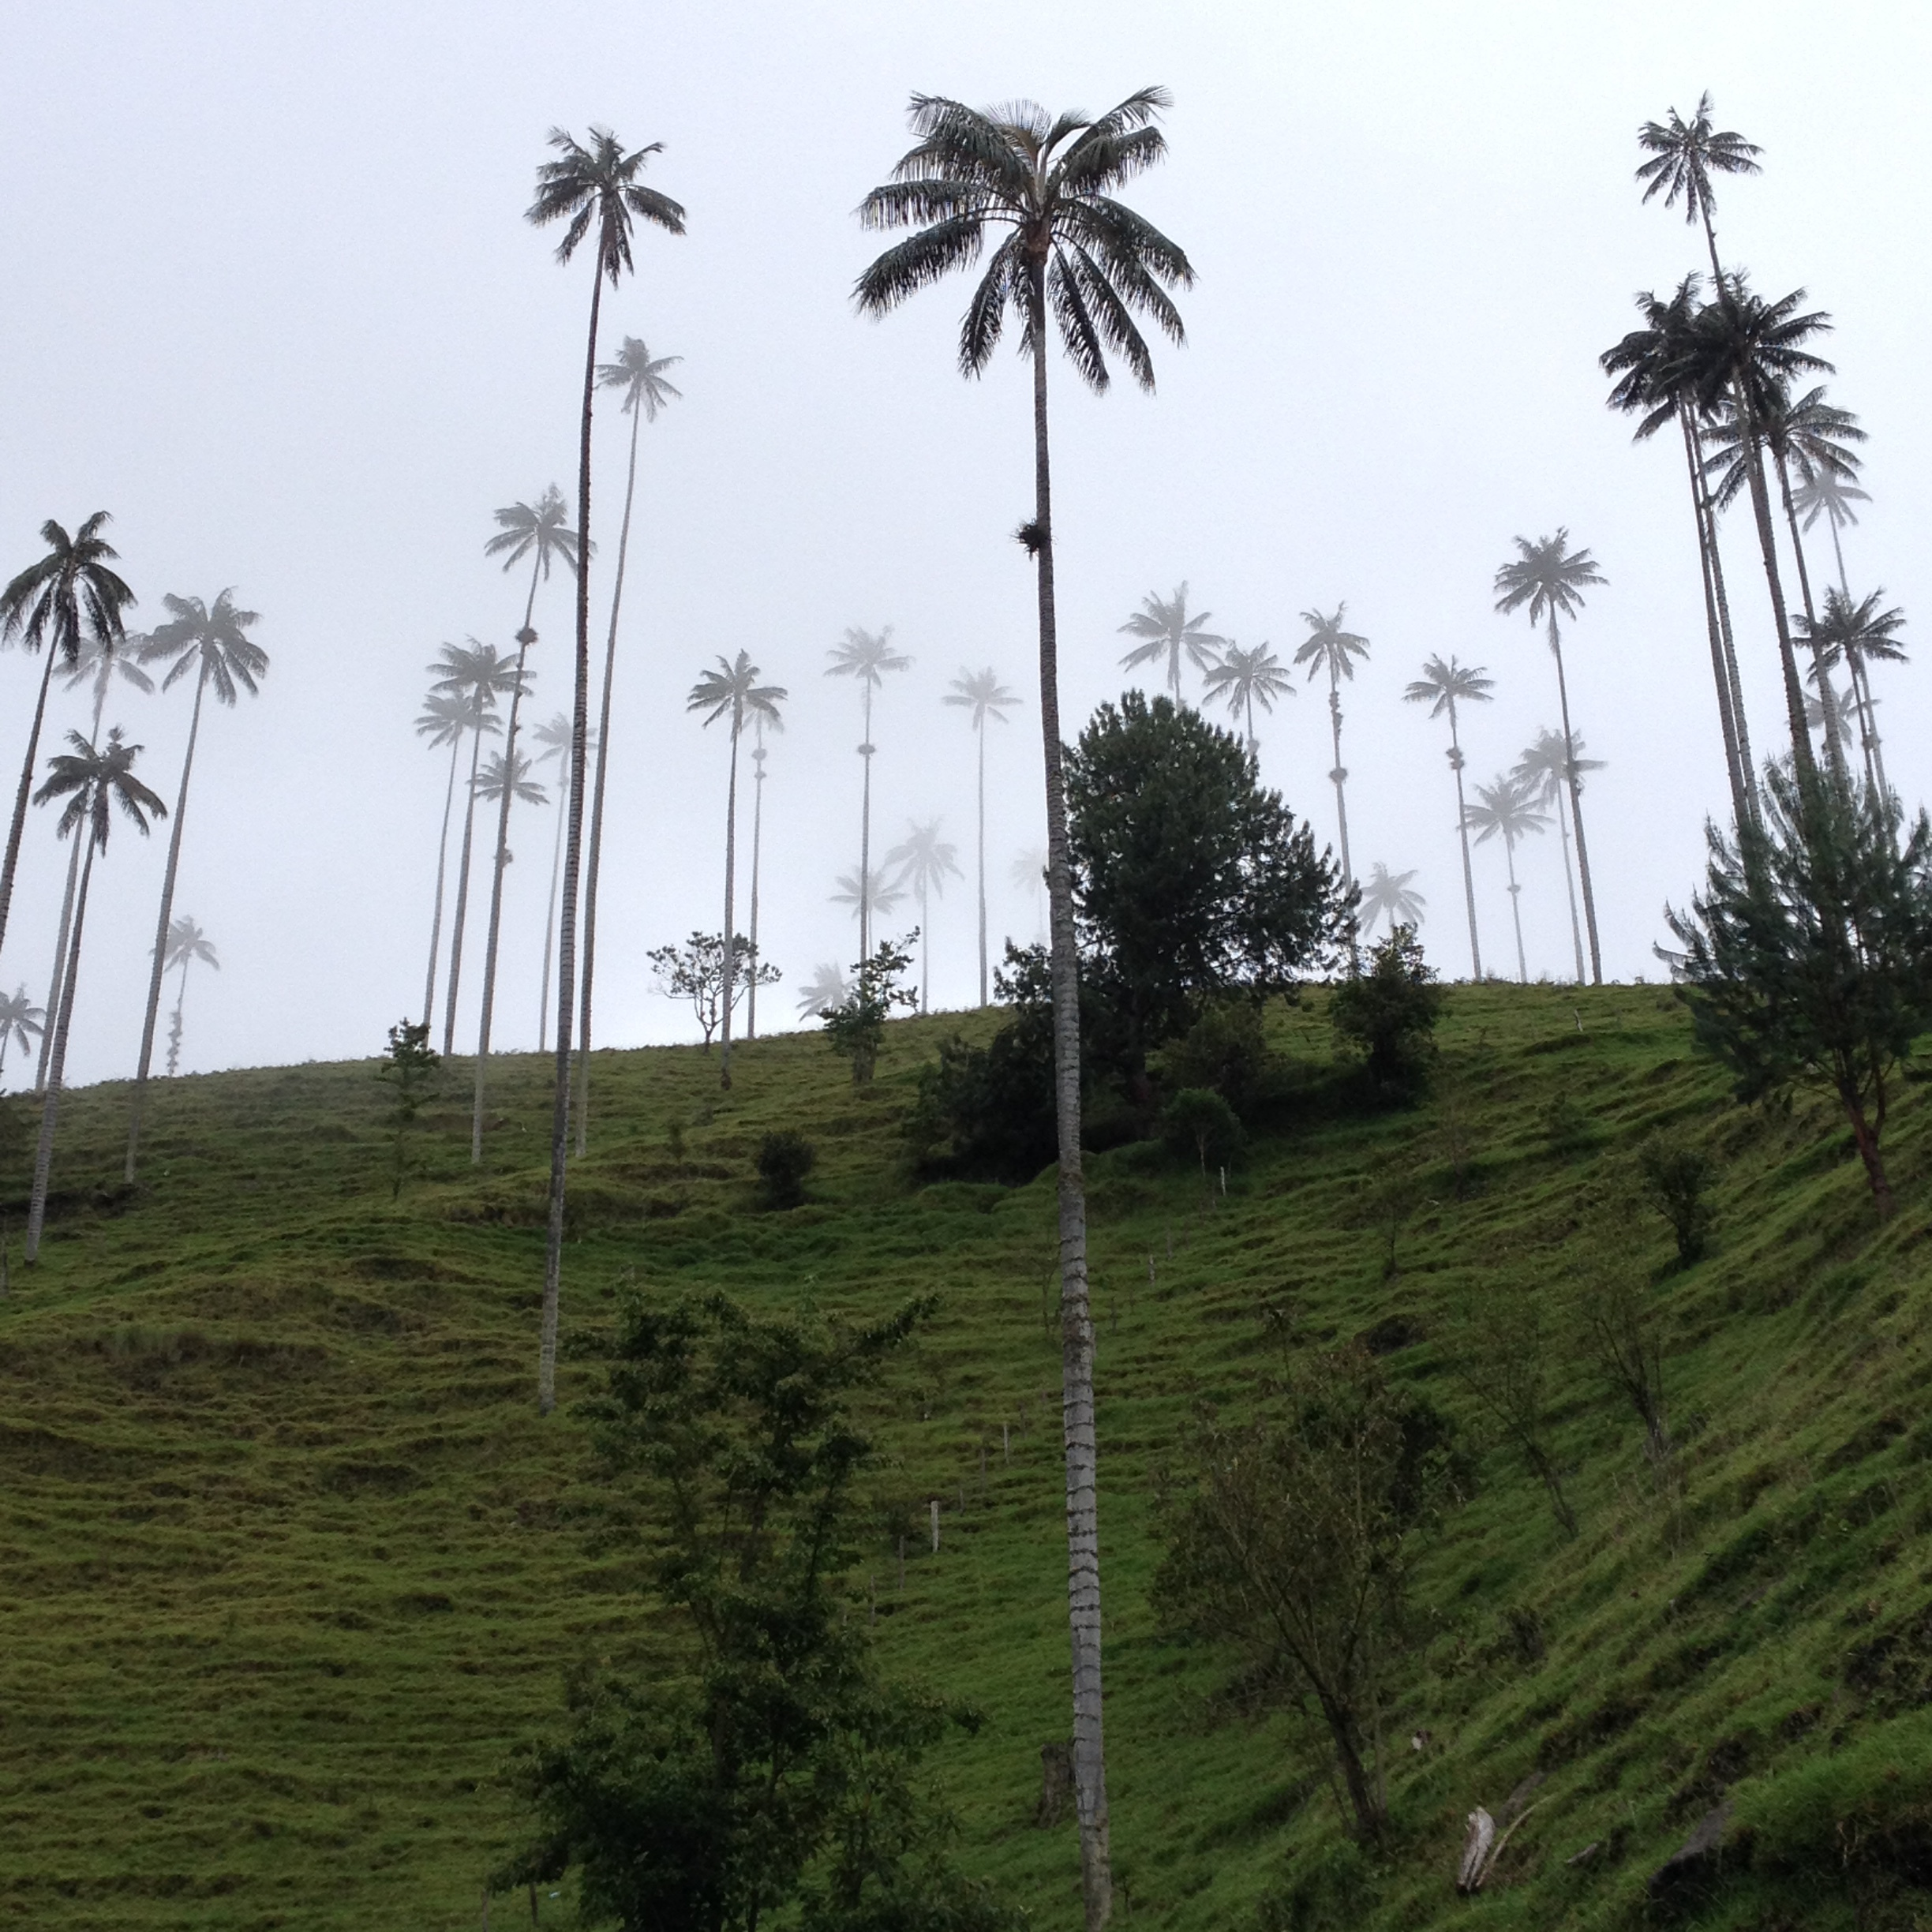 Wax palm trees in the Cocora valley